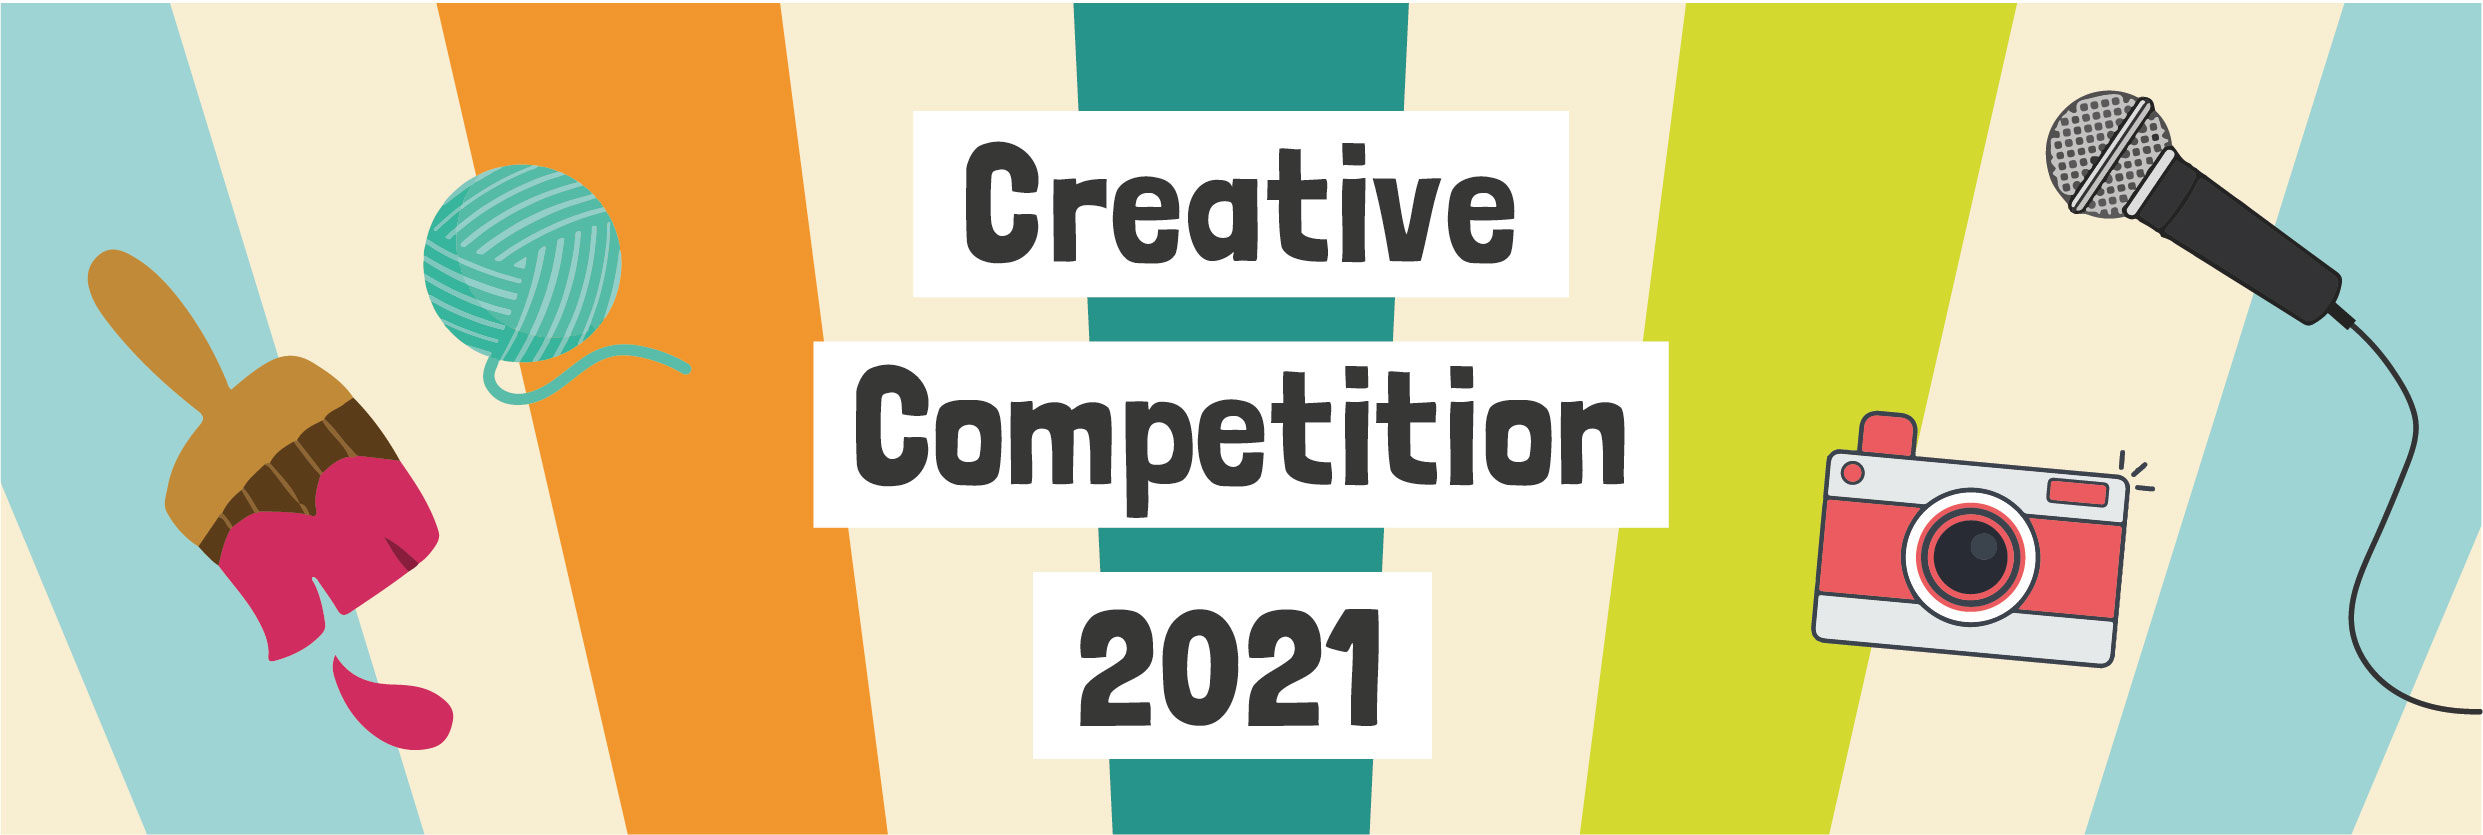 Creative Competition 2021